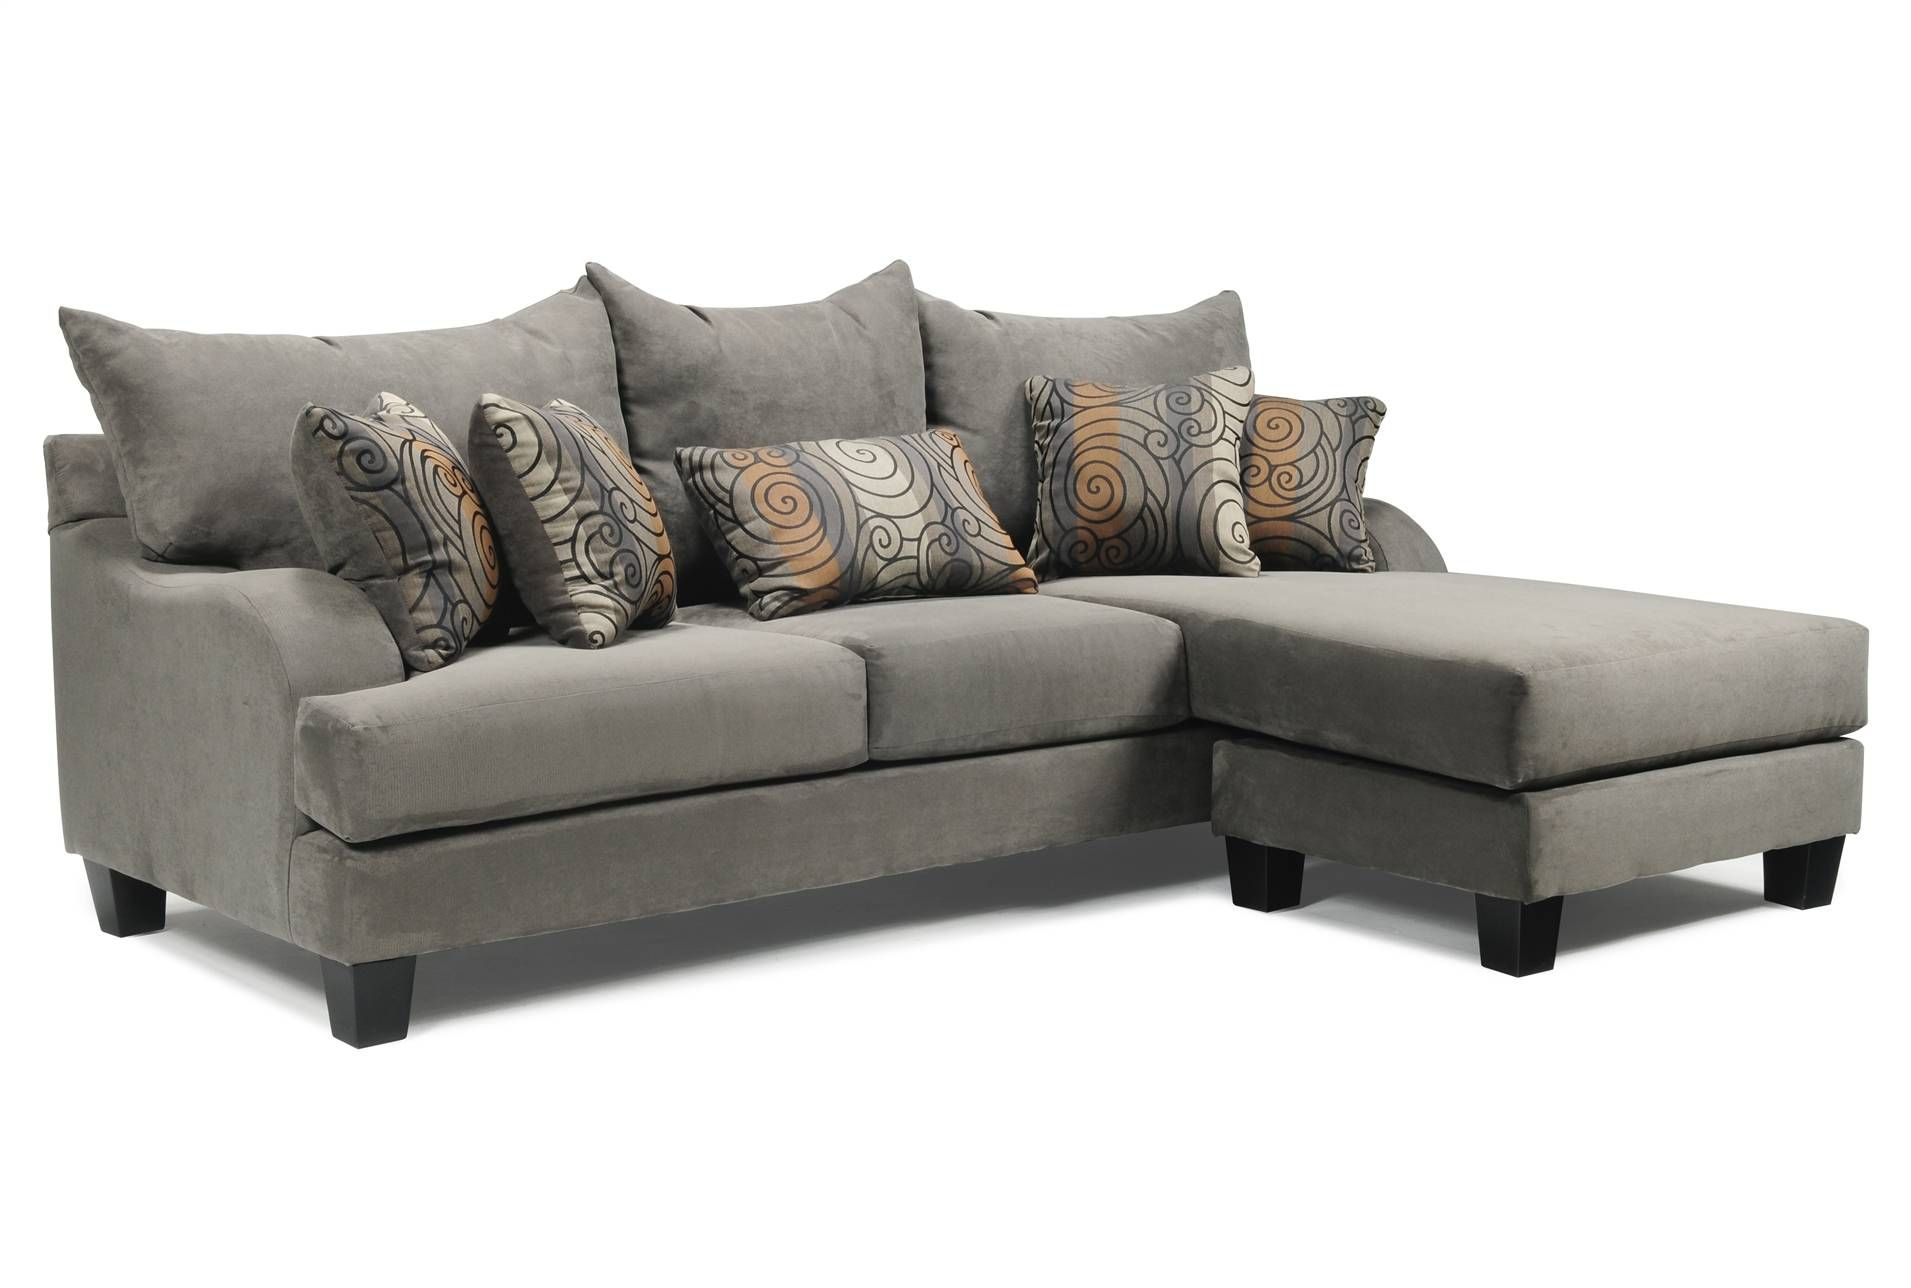 how to sell used sofa grey sectional amazon thinking of trying our living room furniture